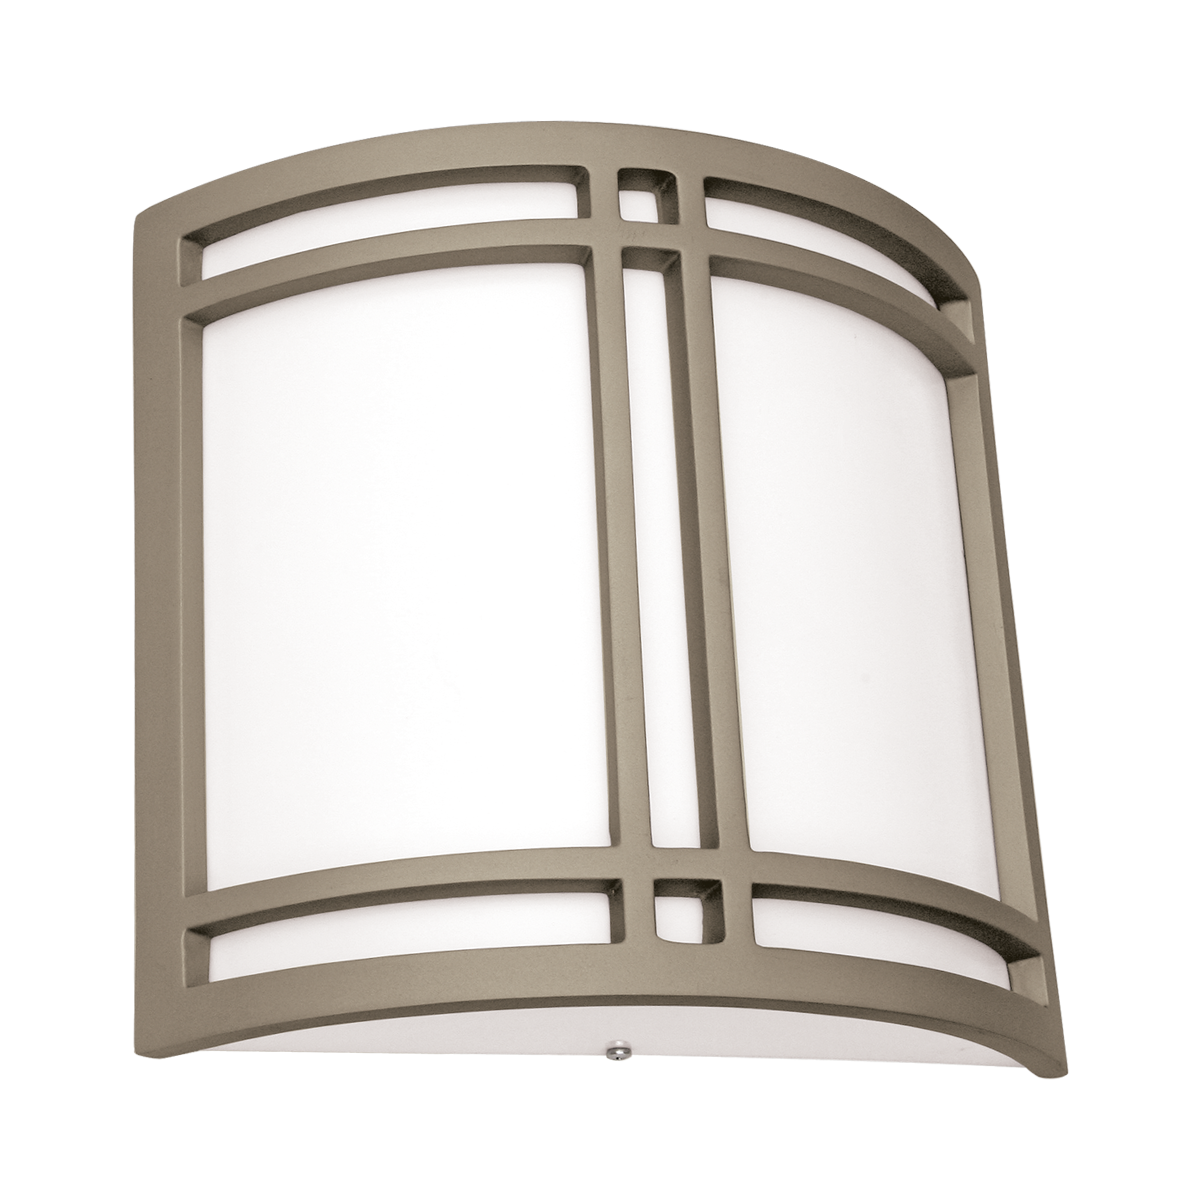 External Wall Light Revit : 100+ [ Revit Wall Sconce Modern Architecture ] Brownlee Lighting Fashionable U2022 Functional ...